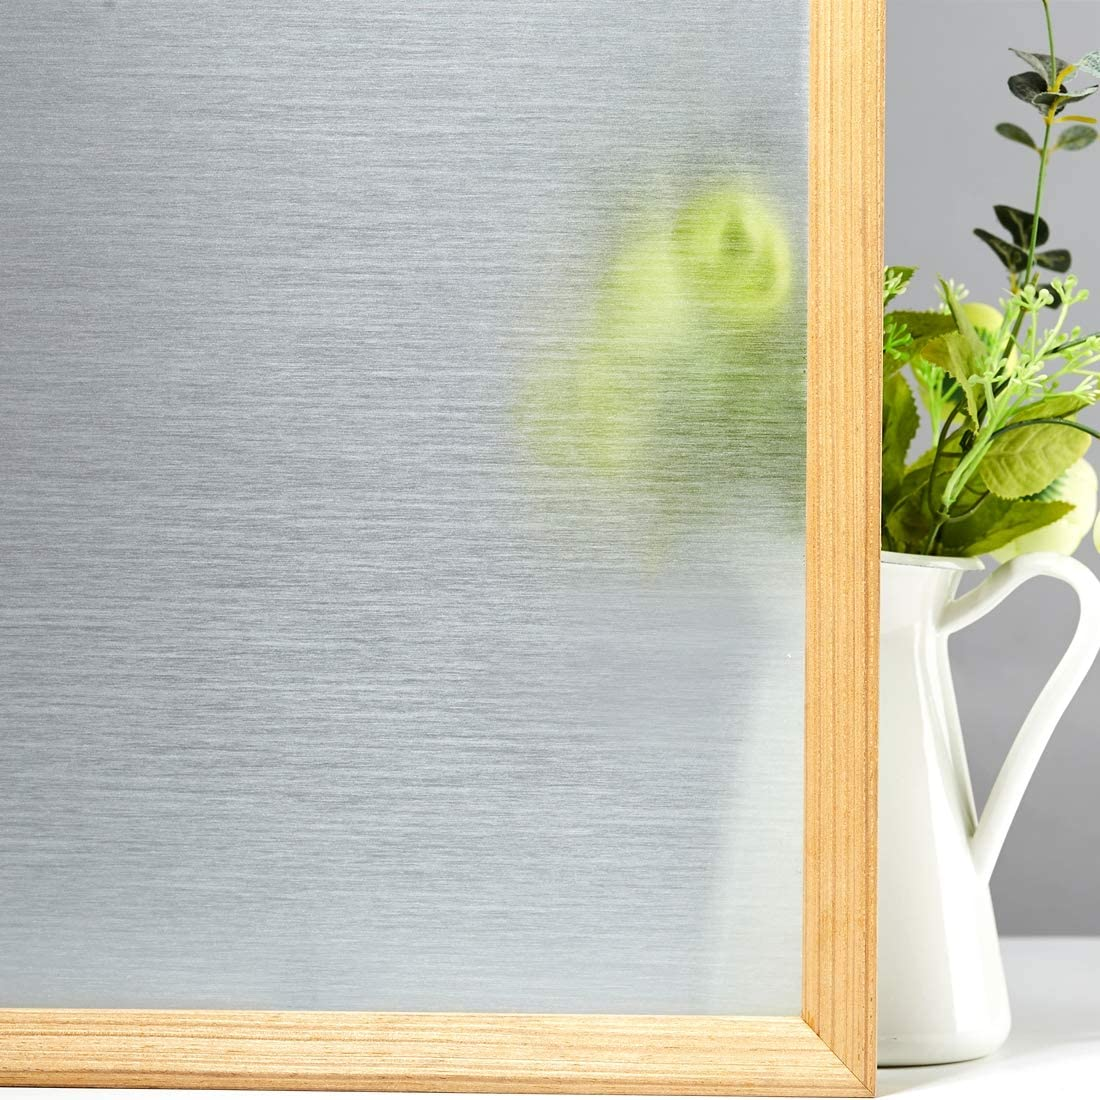 VELIMAX Static Cling Window Privacy Film Silk Textured Window Clings Tint Decorative Window Sticker Non Adhesive for Glass Heat Control Silk Translucent, 35.4n x 13ft